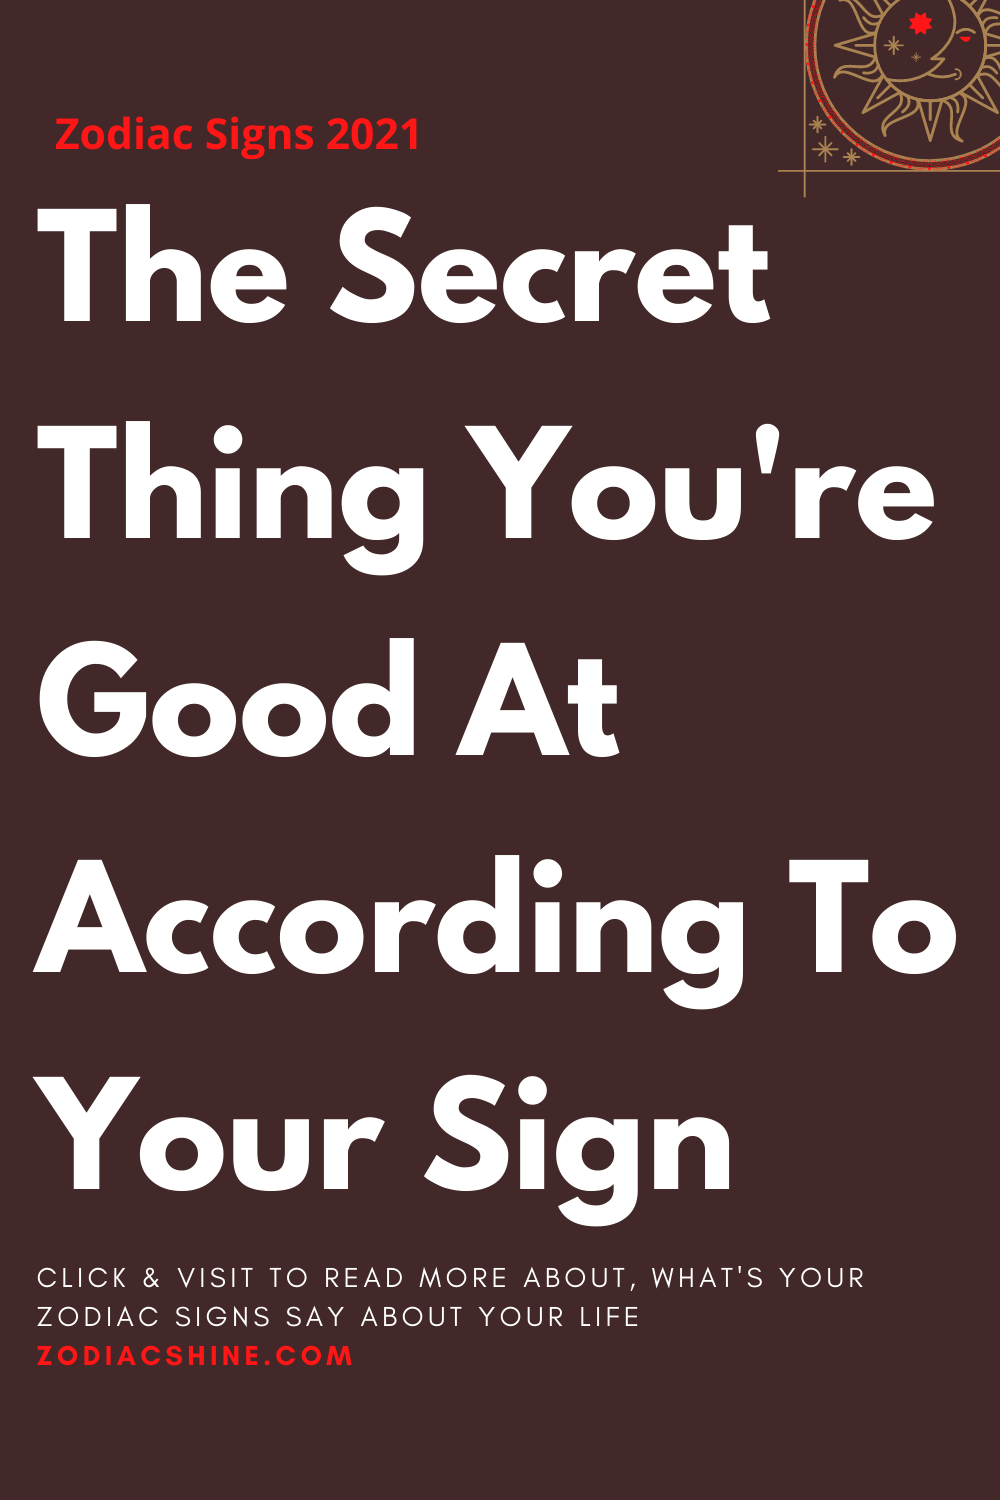 The Secret Thing You're Good At According To Your Sign